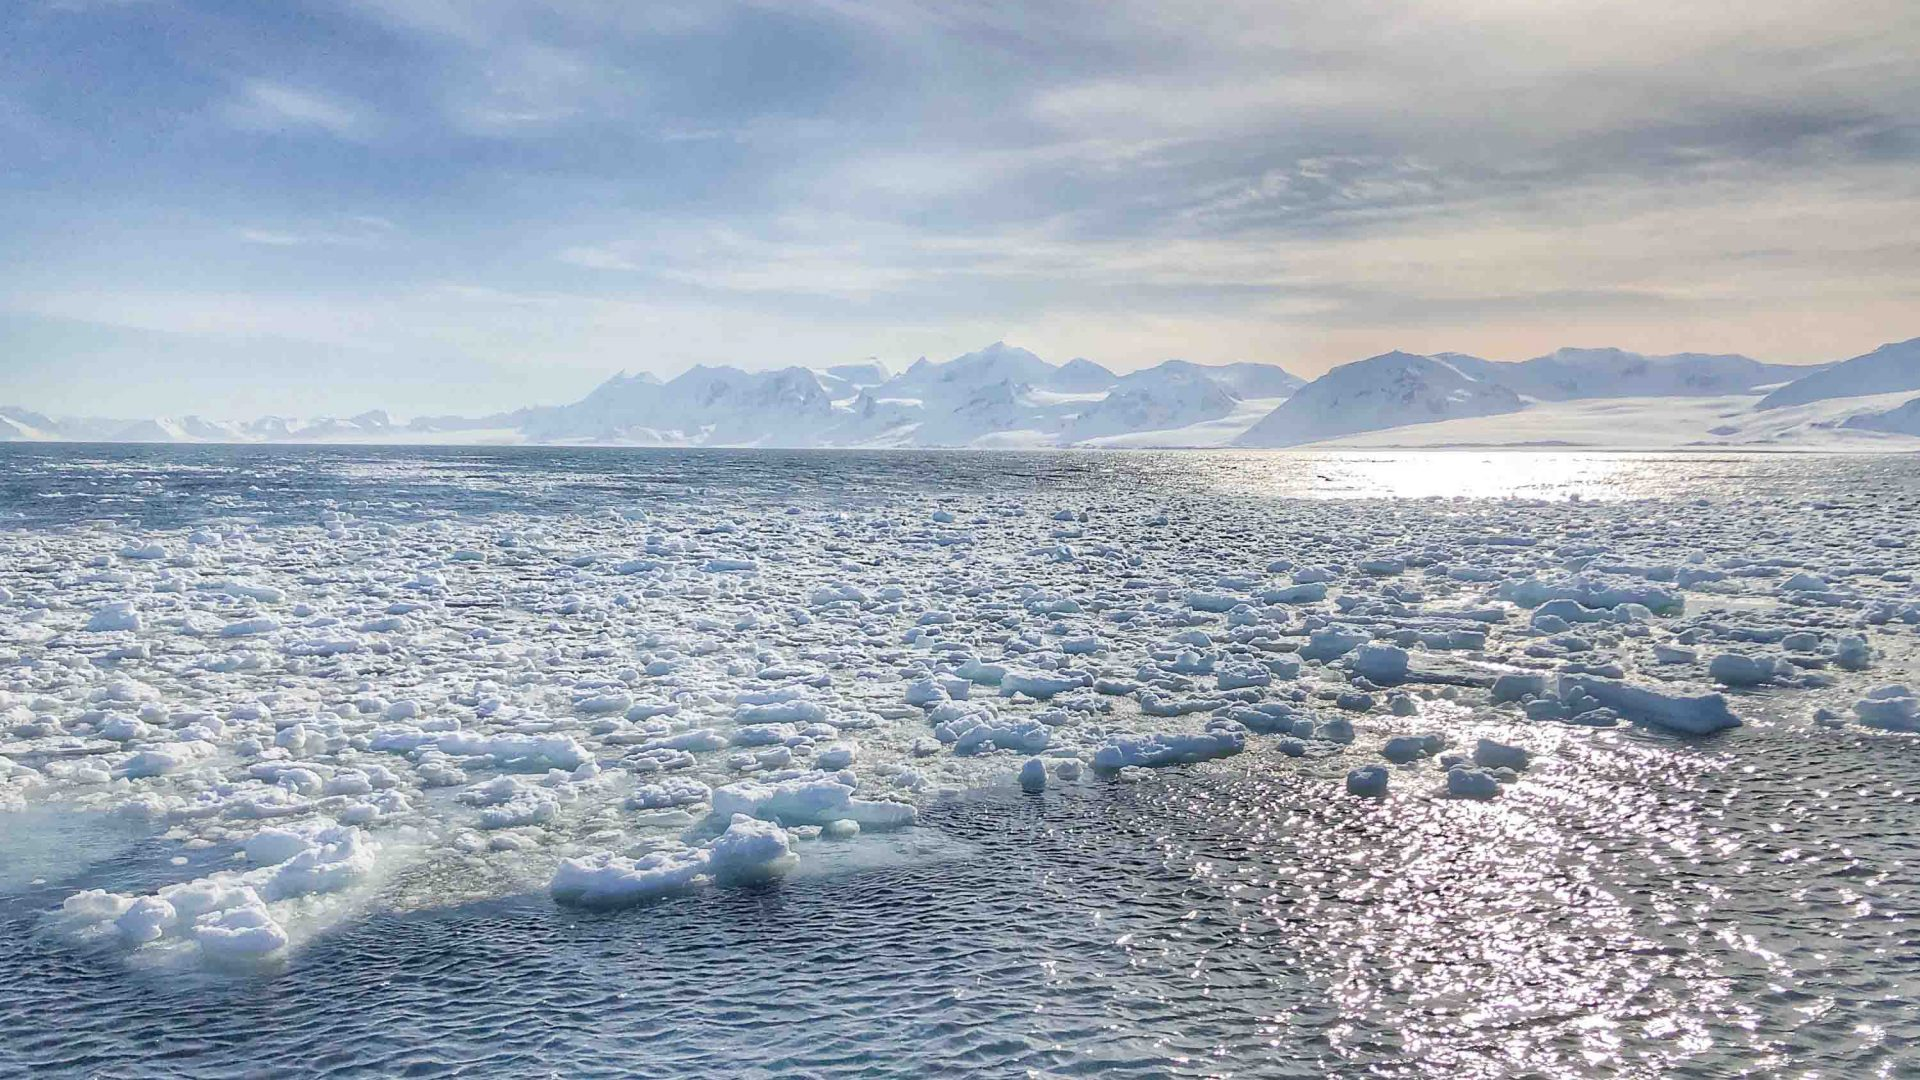 Navigating past icebergs while sailing through the Svalbard archipelago in the Arctic.